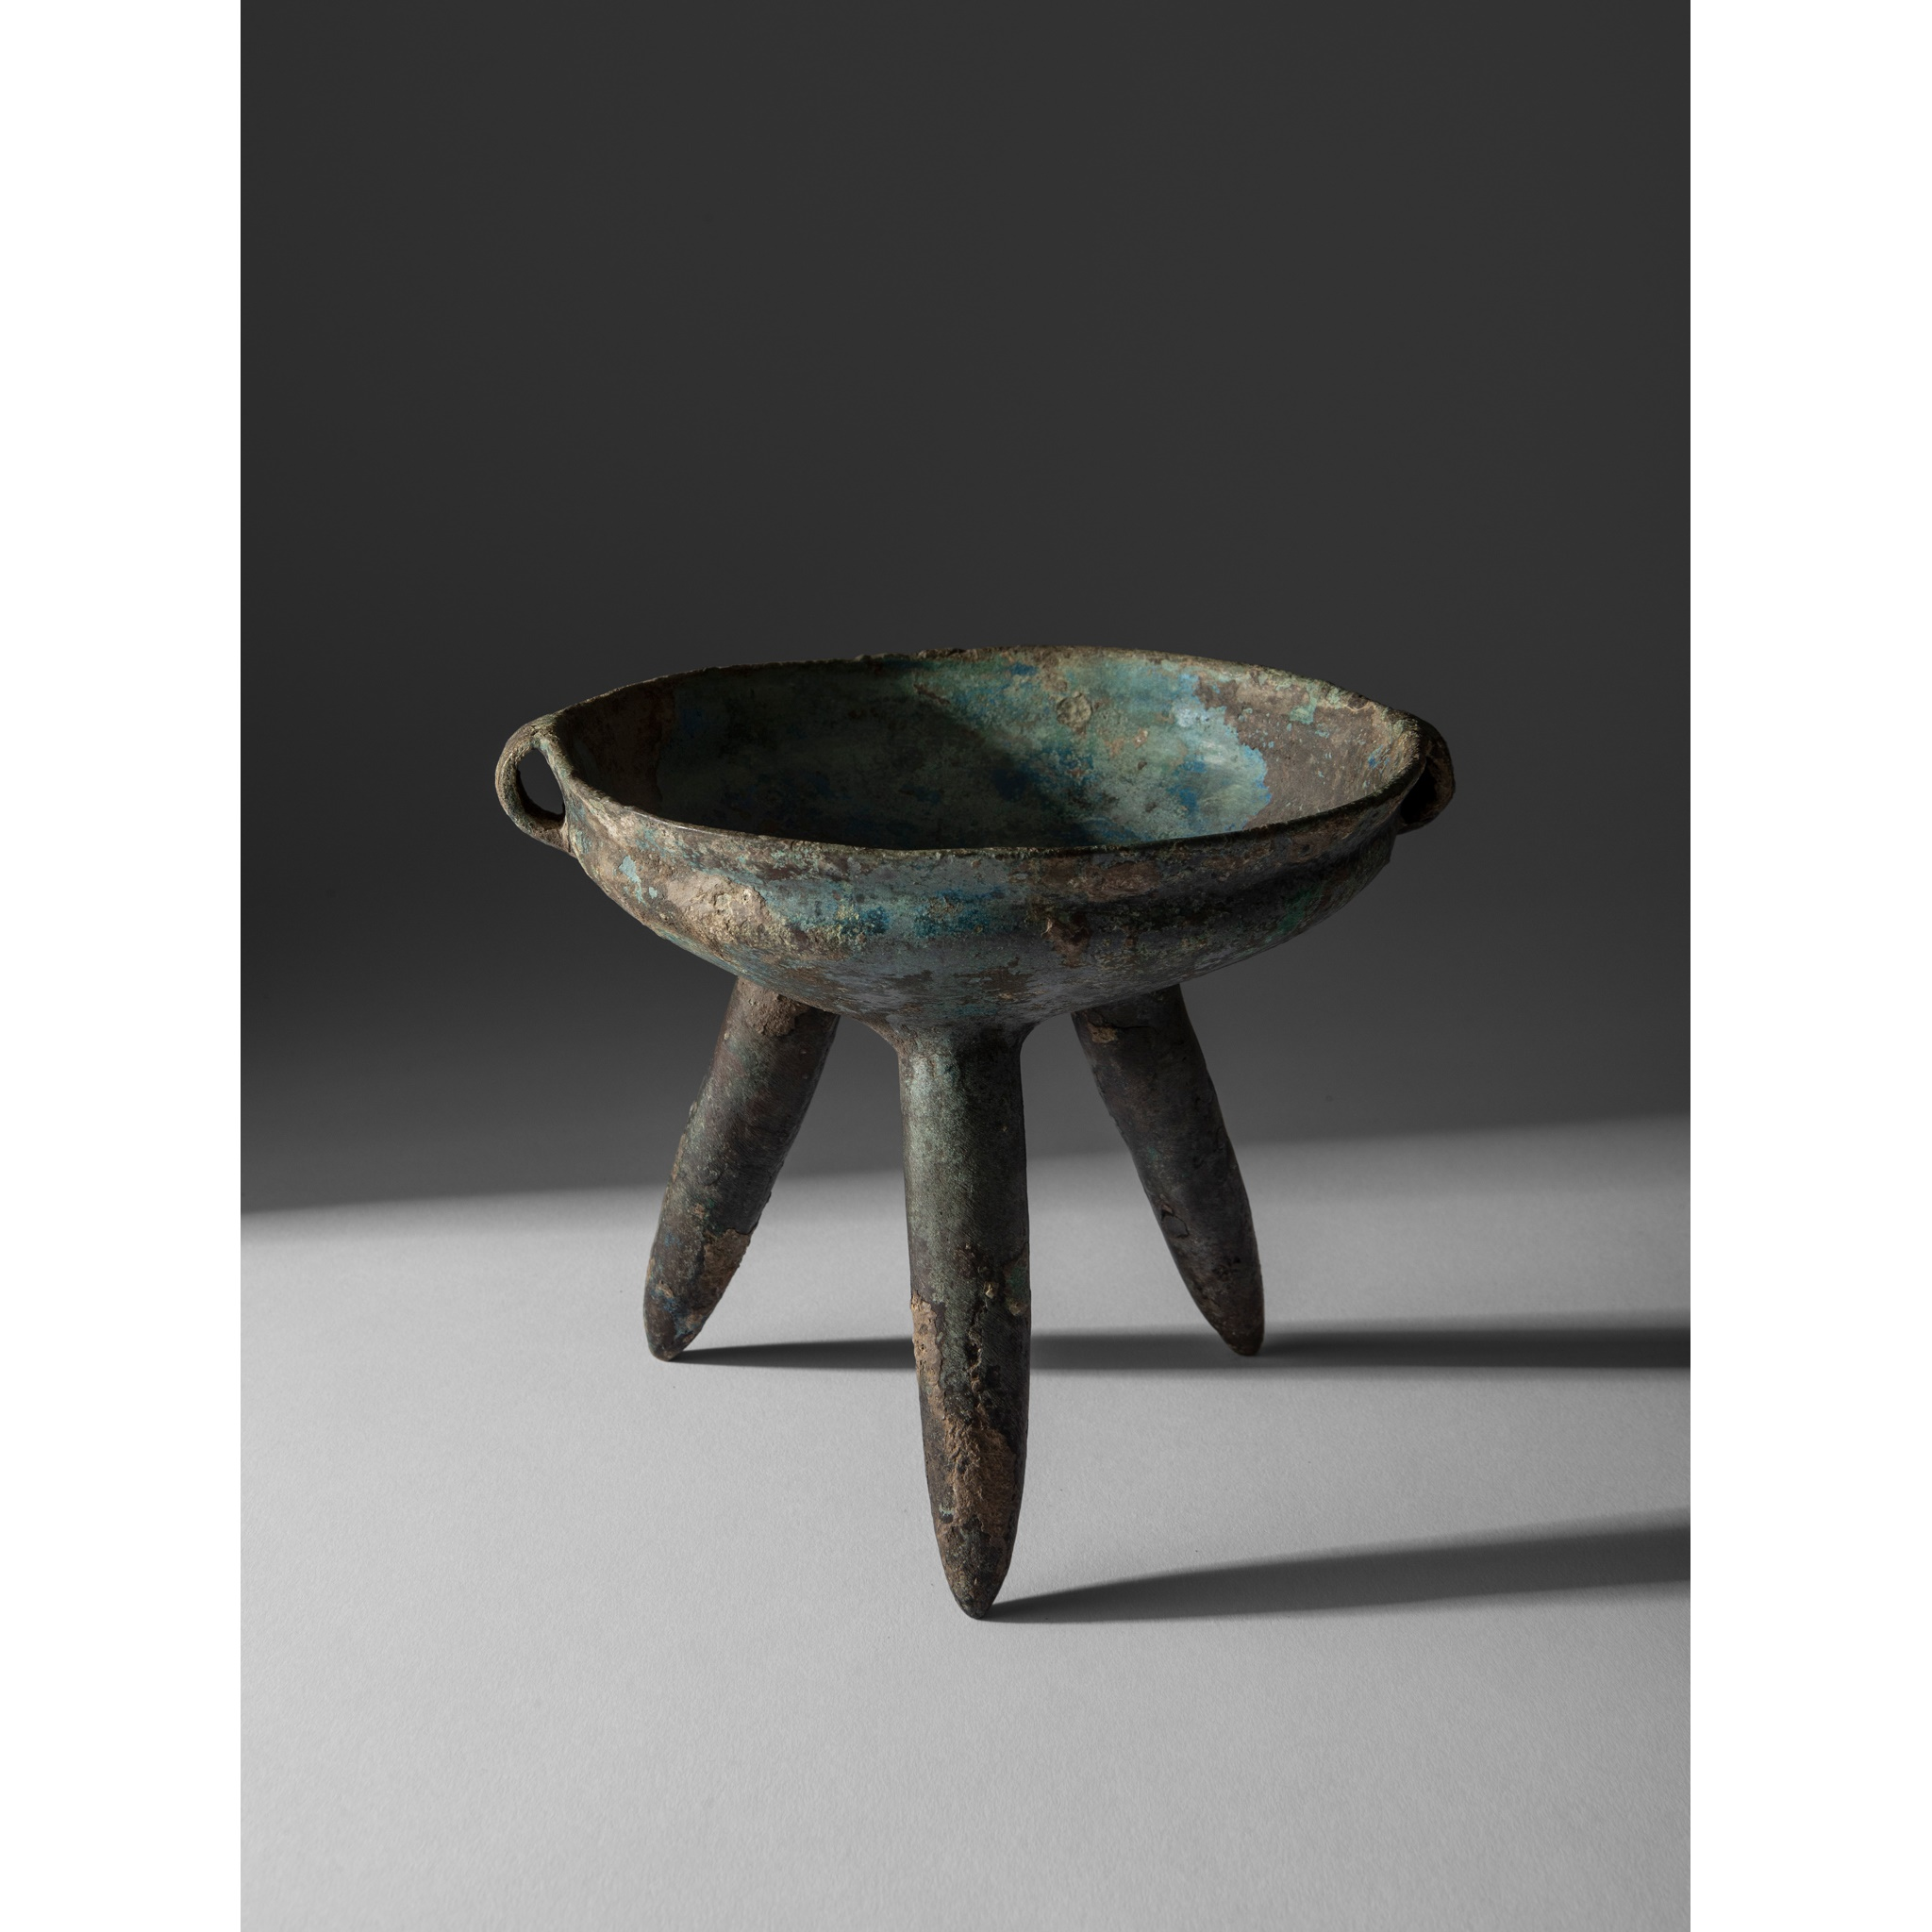 VERY RARE BRONZE RITUAL TRIPOD VESSEL | NEOLITHIC-TO-BRONZE-AGE-STYLE, MONGOLIA, DONGHU TRIBE, Provenance: formerly in the Robert Hatfield Ellsworth (1929-2014) Collection, acquired from Sotheby's New York on 19th March 2002, lot 30, 18.5cm wide